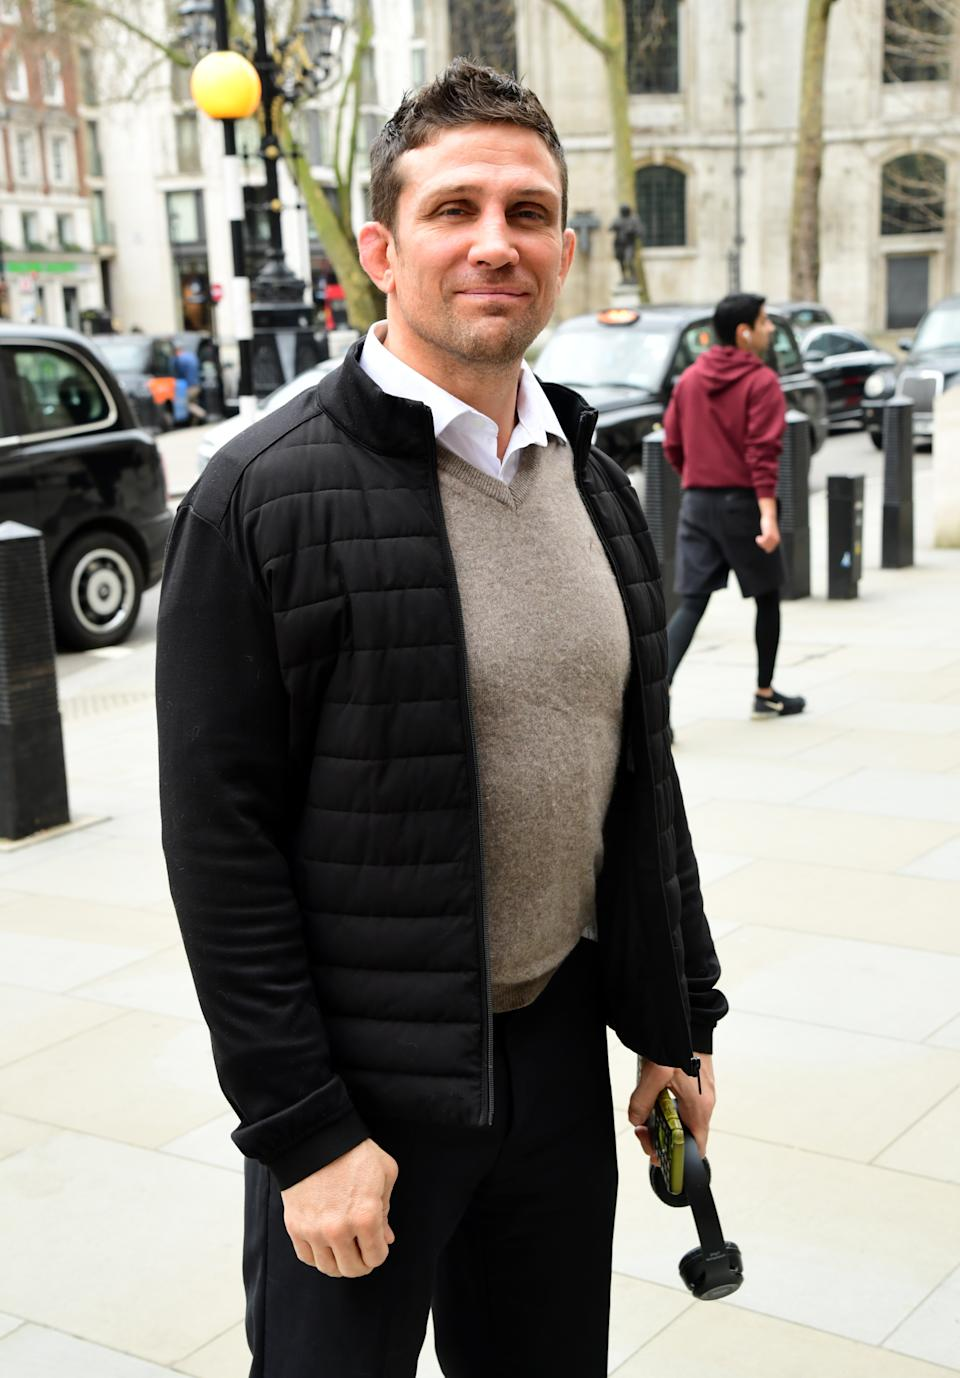 Alex Reid seen outside the High Court in London, before the ruling on damages in acase between himself and Katie Price.